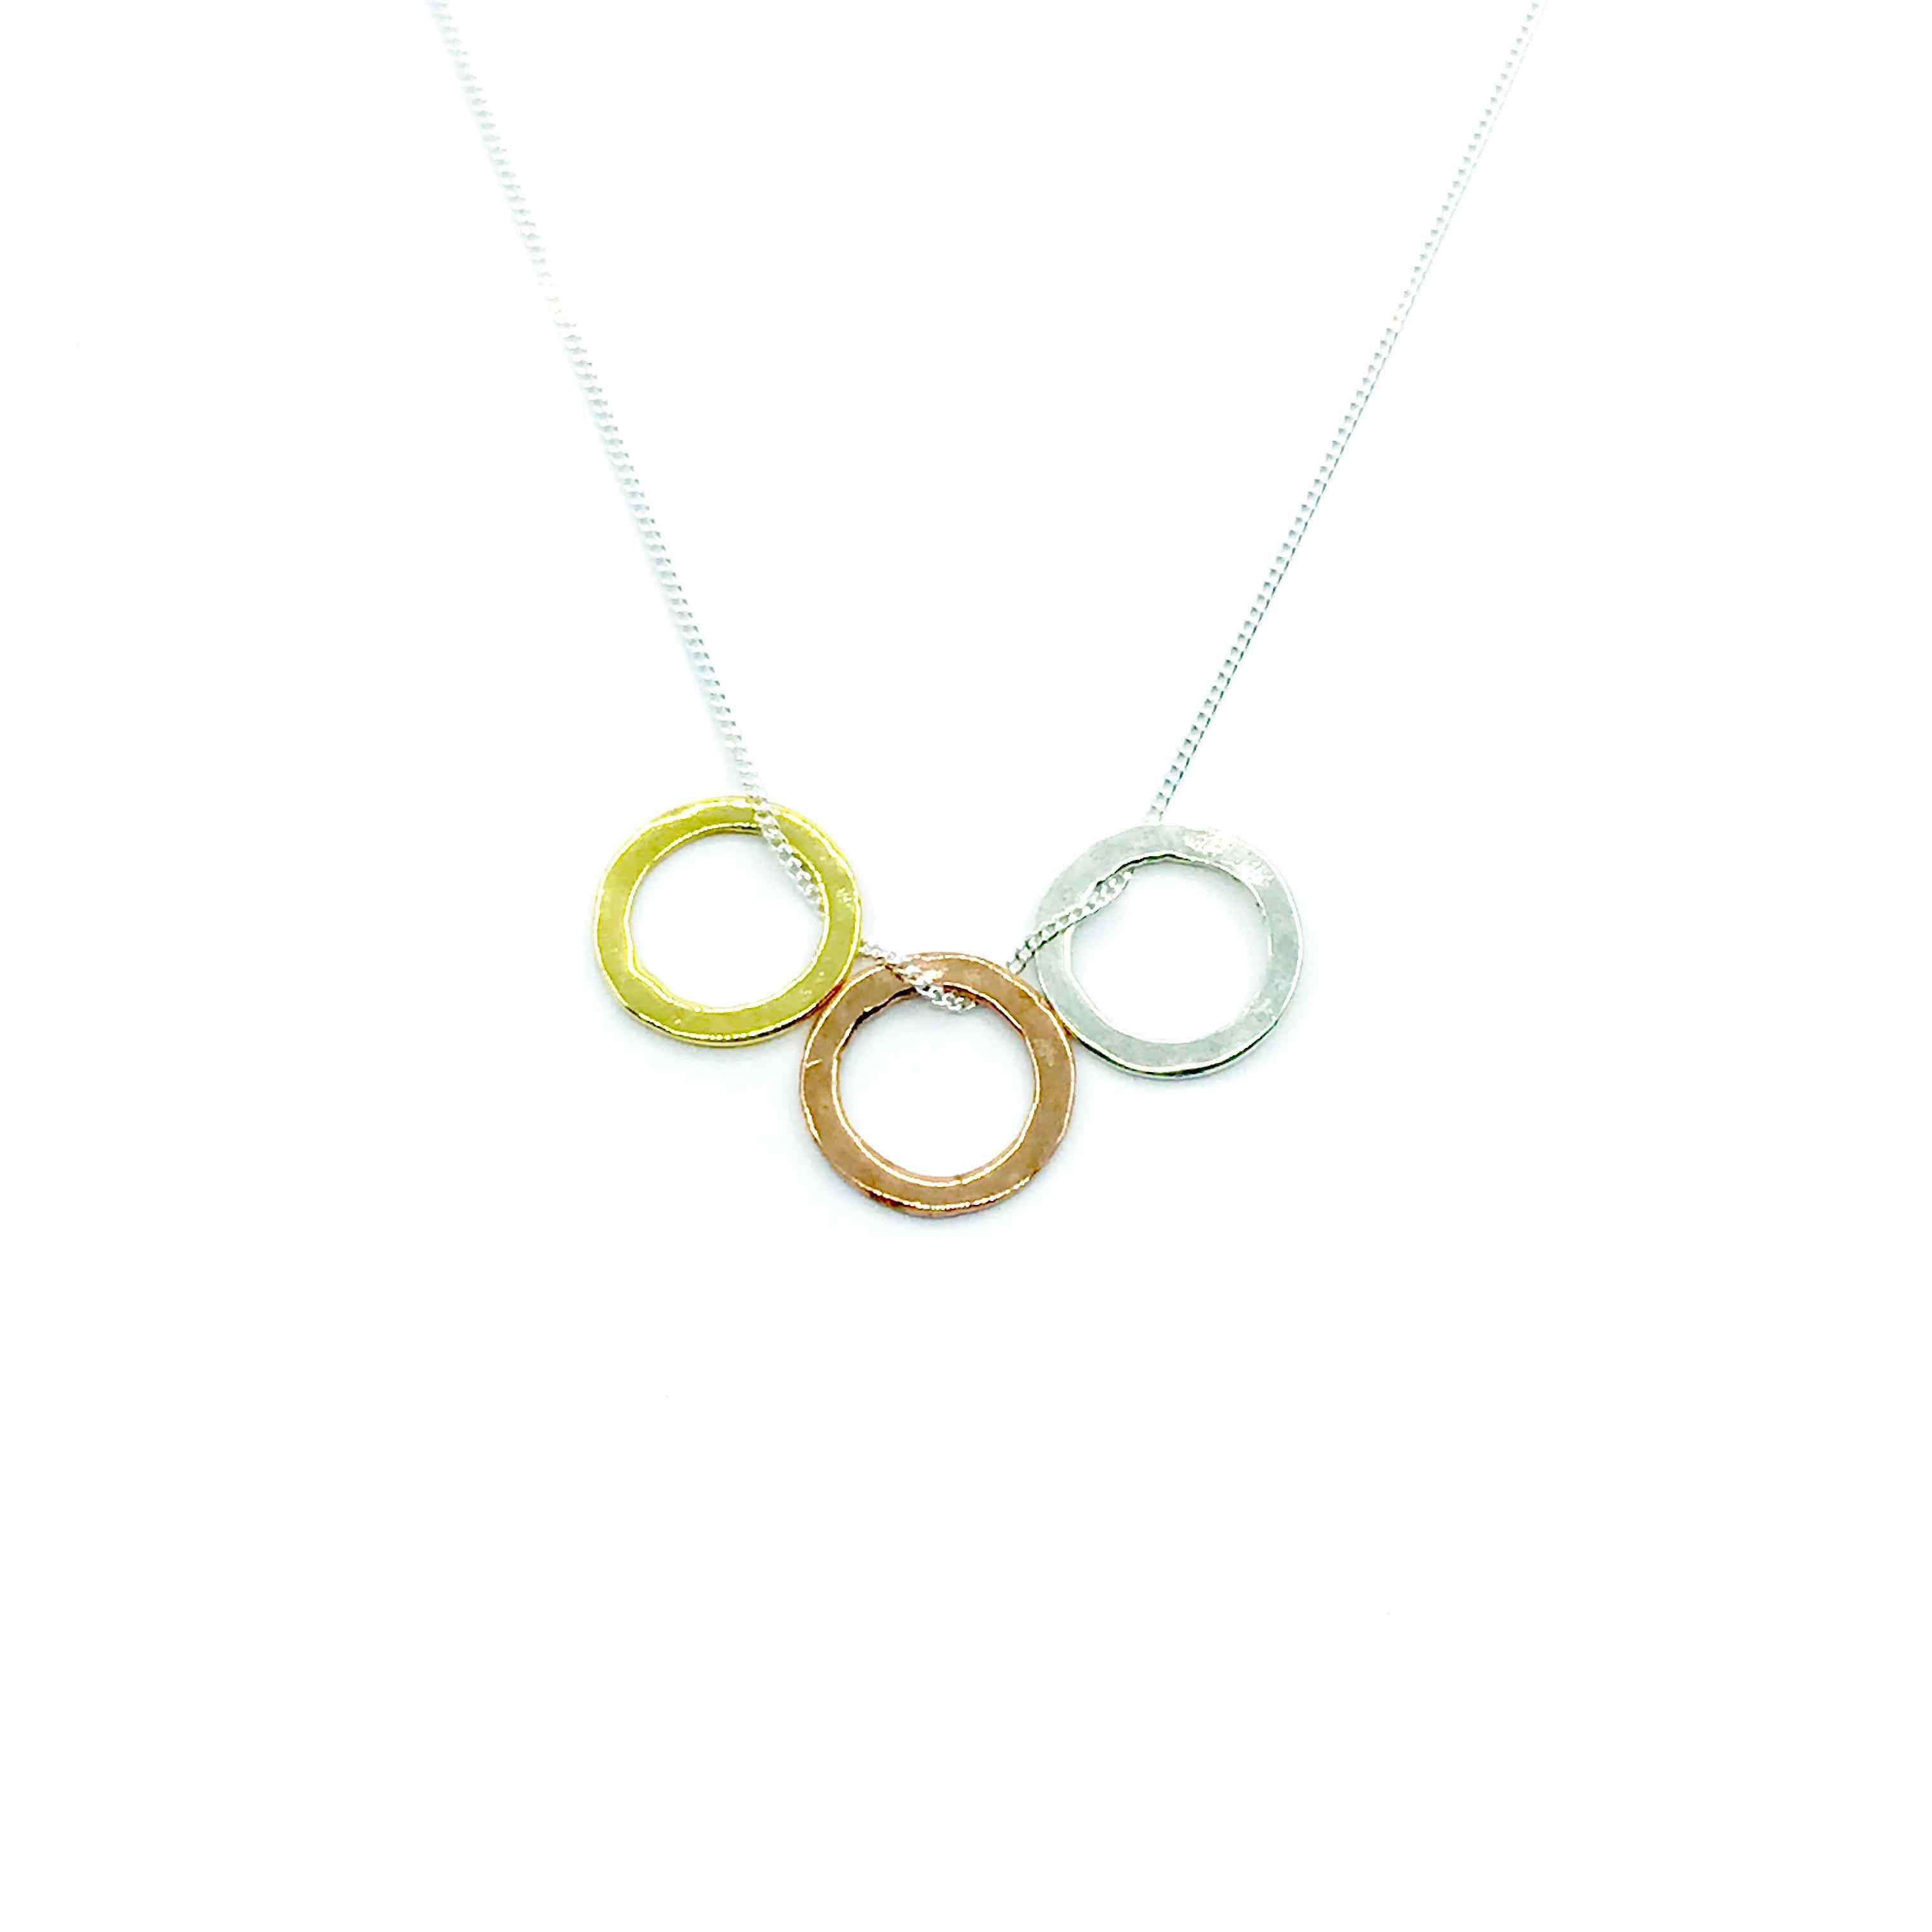 3 circle necklace spirit jewellery shop